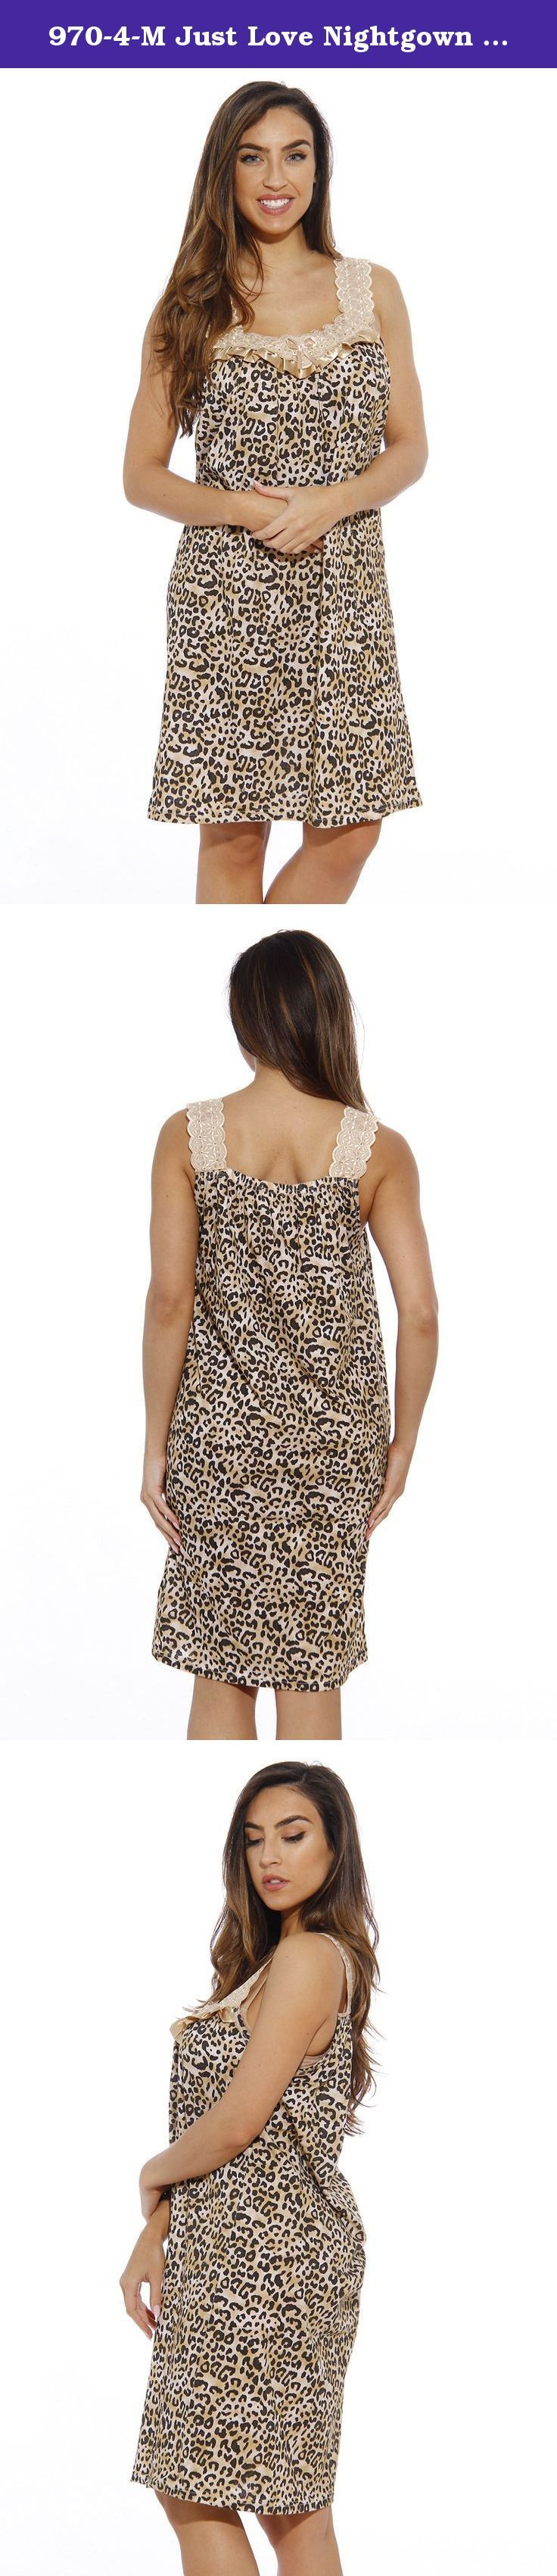 970-4-M Just Love Nightgown / Women Sleepwear / Womans Pajamas, Leopard, Medium. Just Love styles prides itself on value. We focus on giving the consumer the latest fashion and styling at prices that won't break the bank.